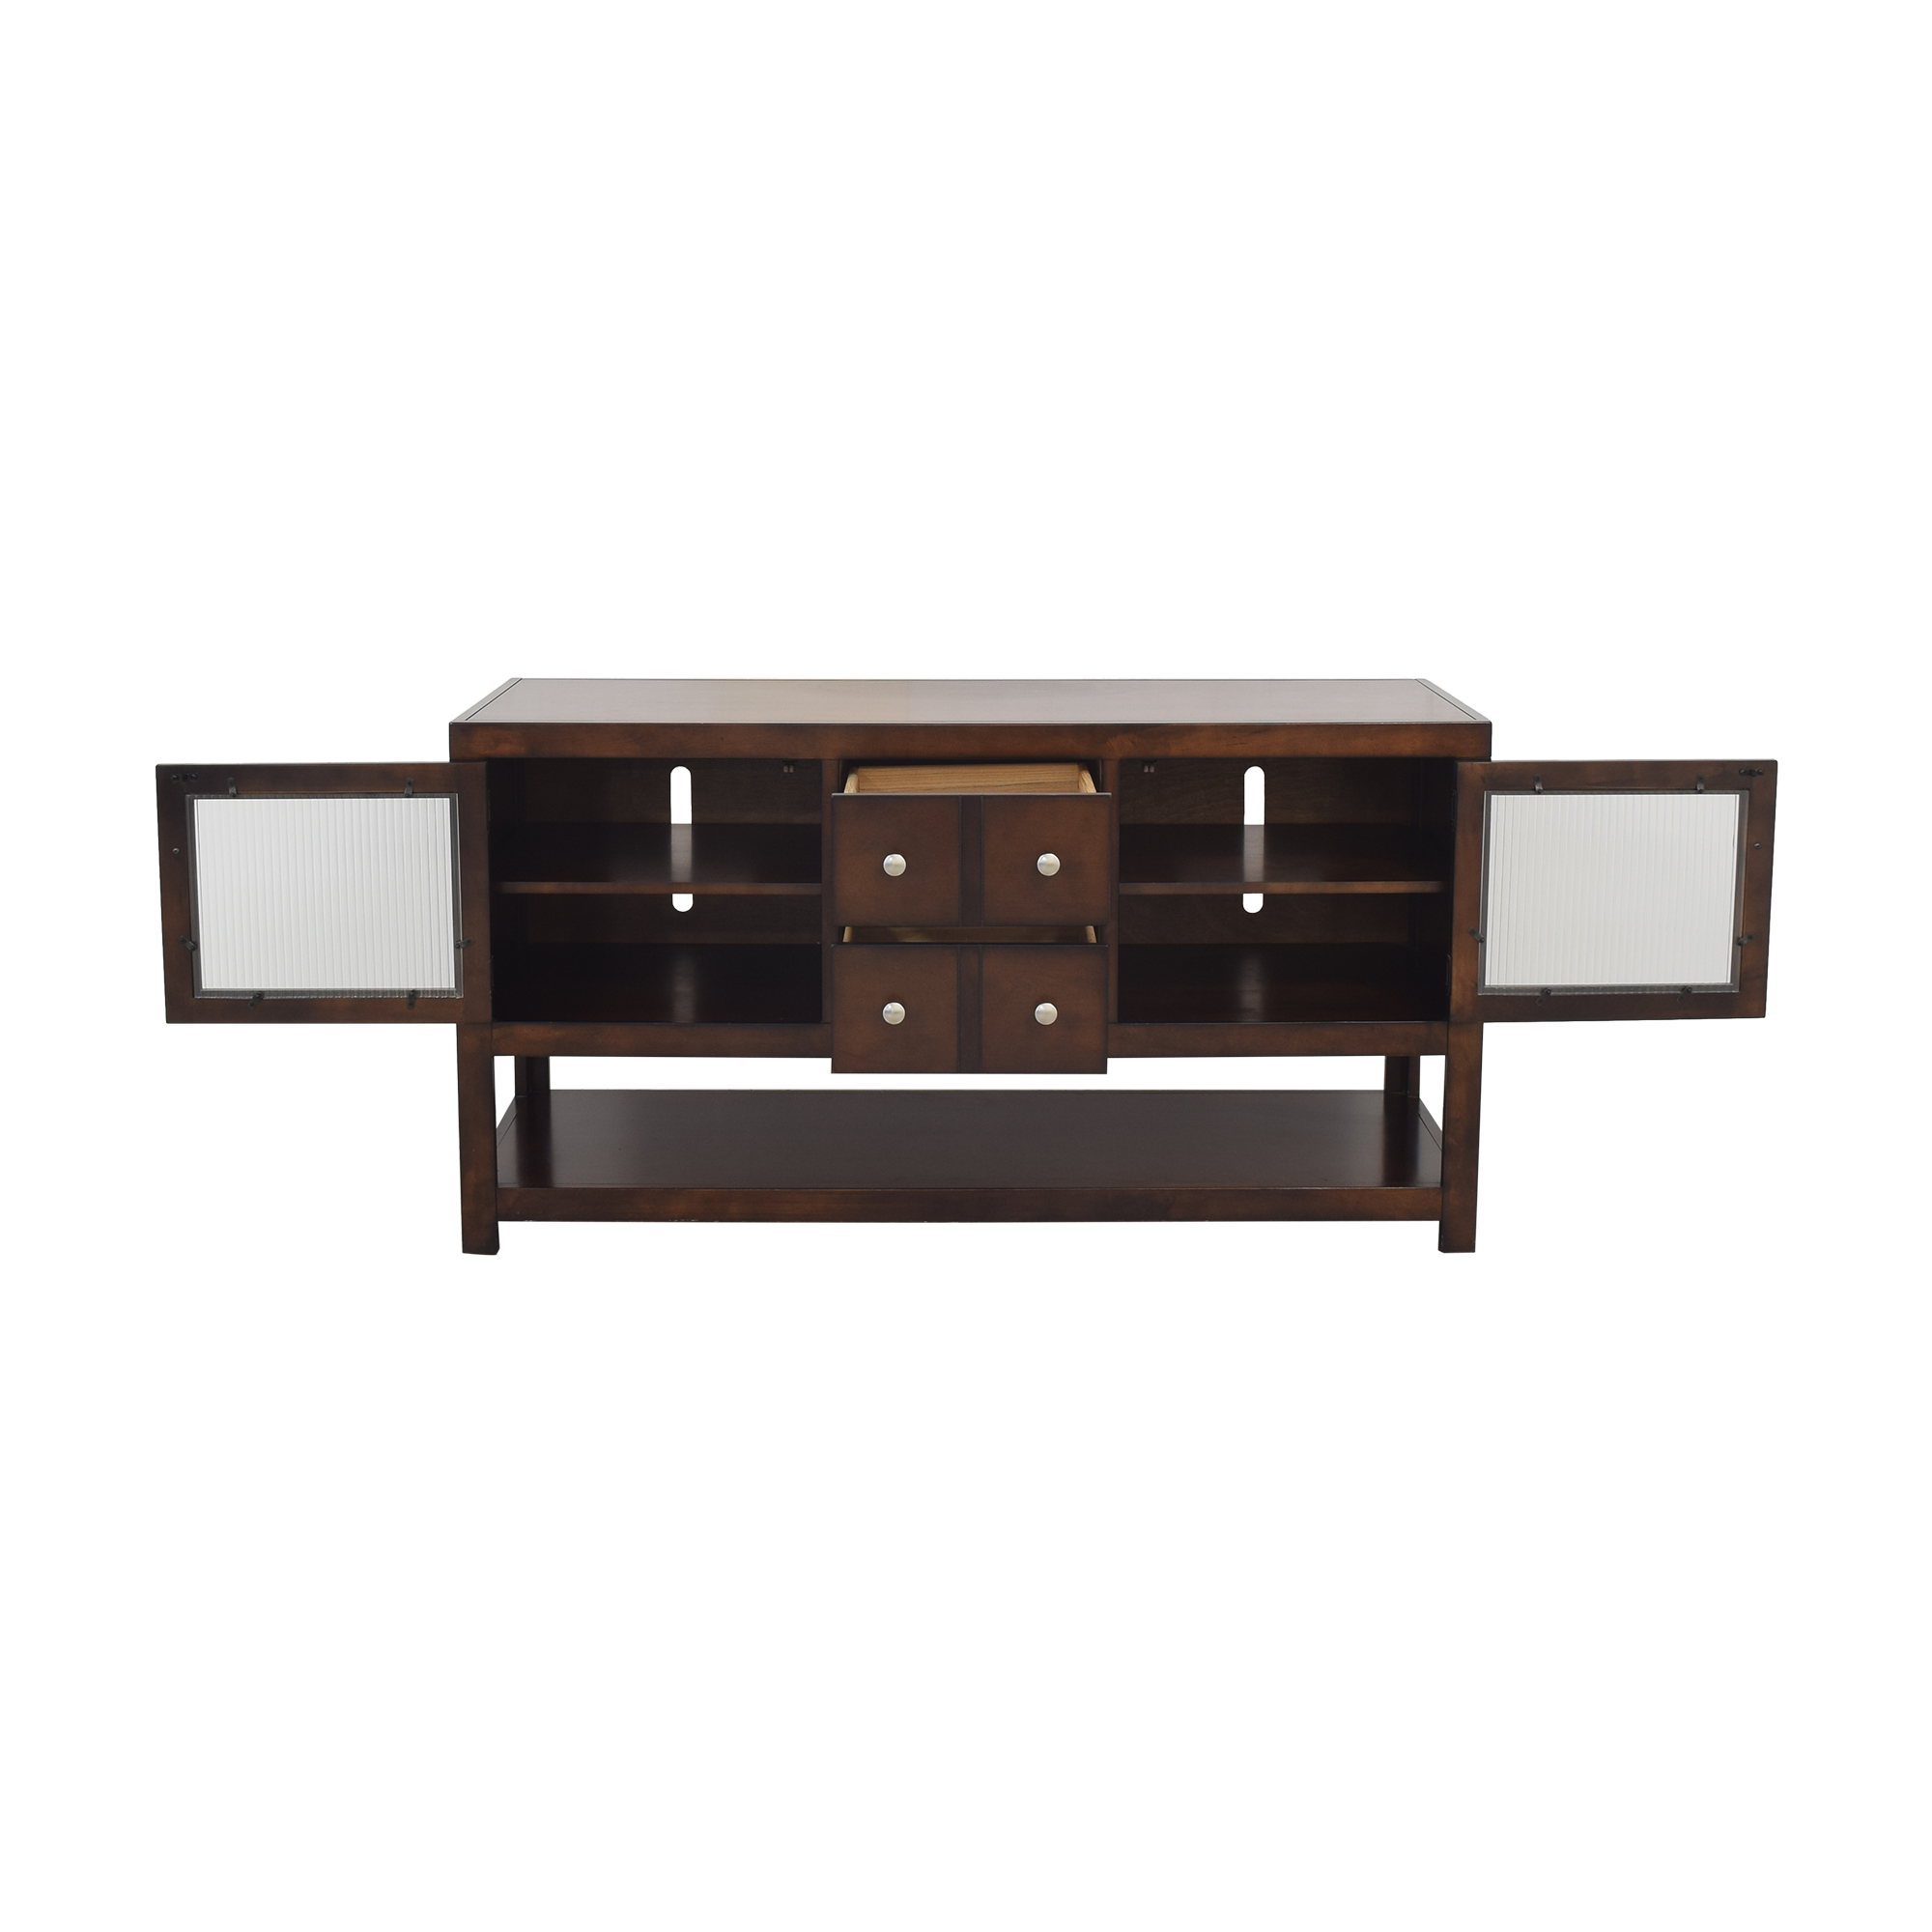 Raymour & Flanigan Raymour and Flanigan Media Console with Cabinets Storage